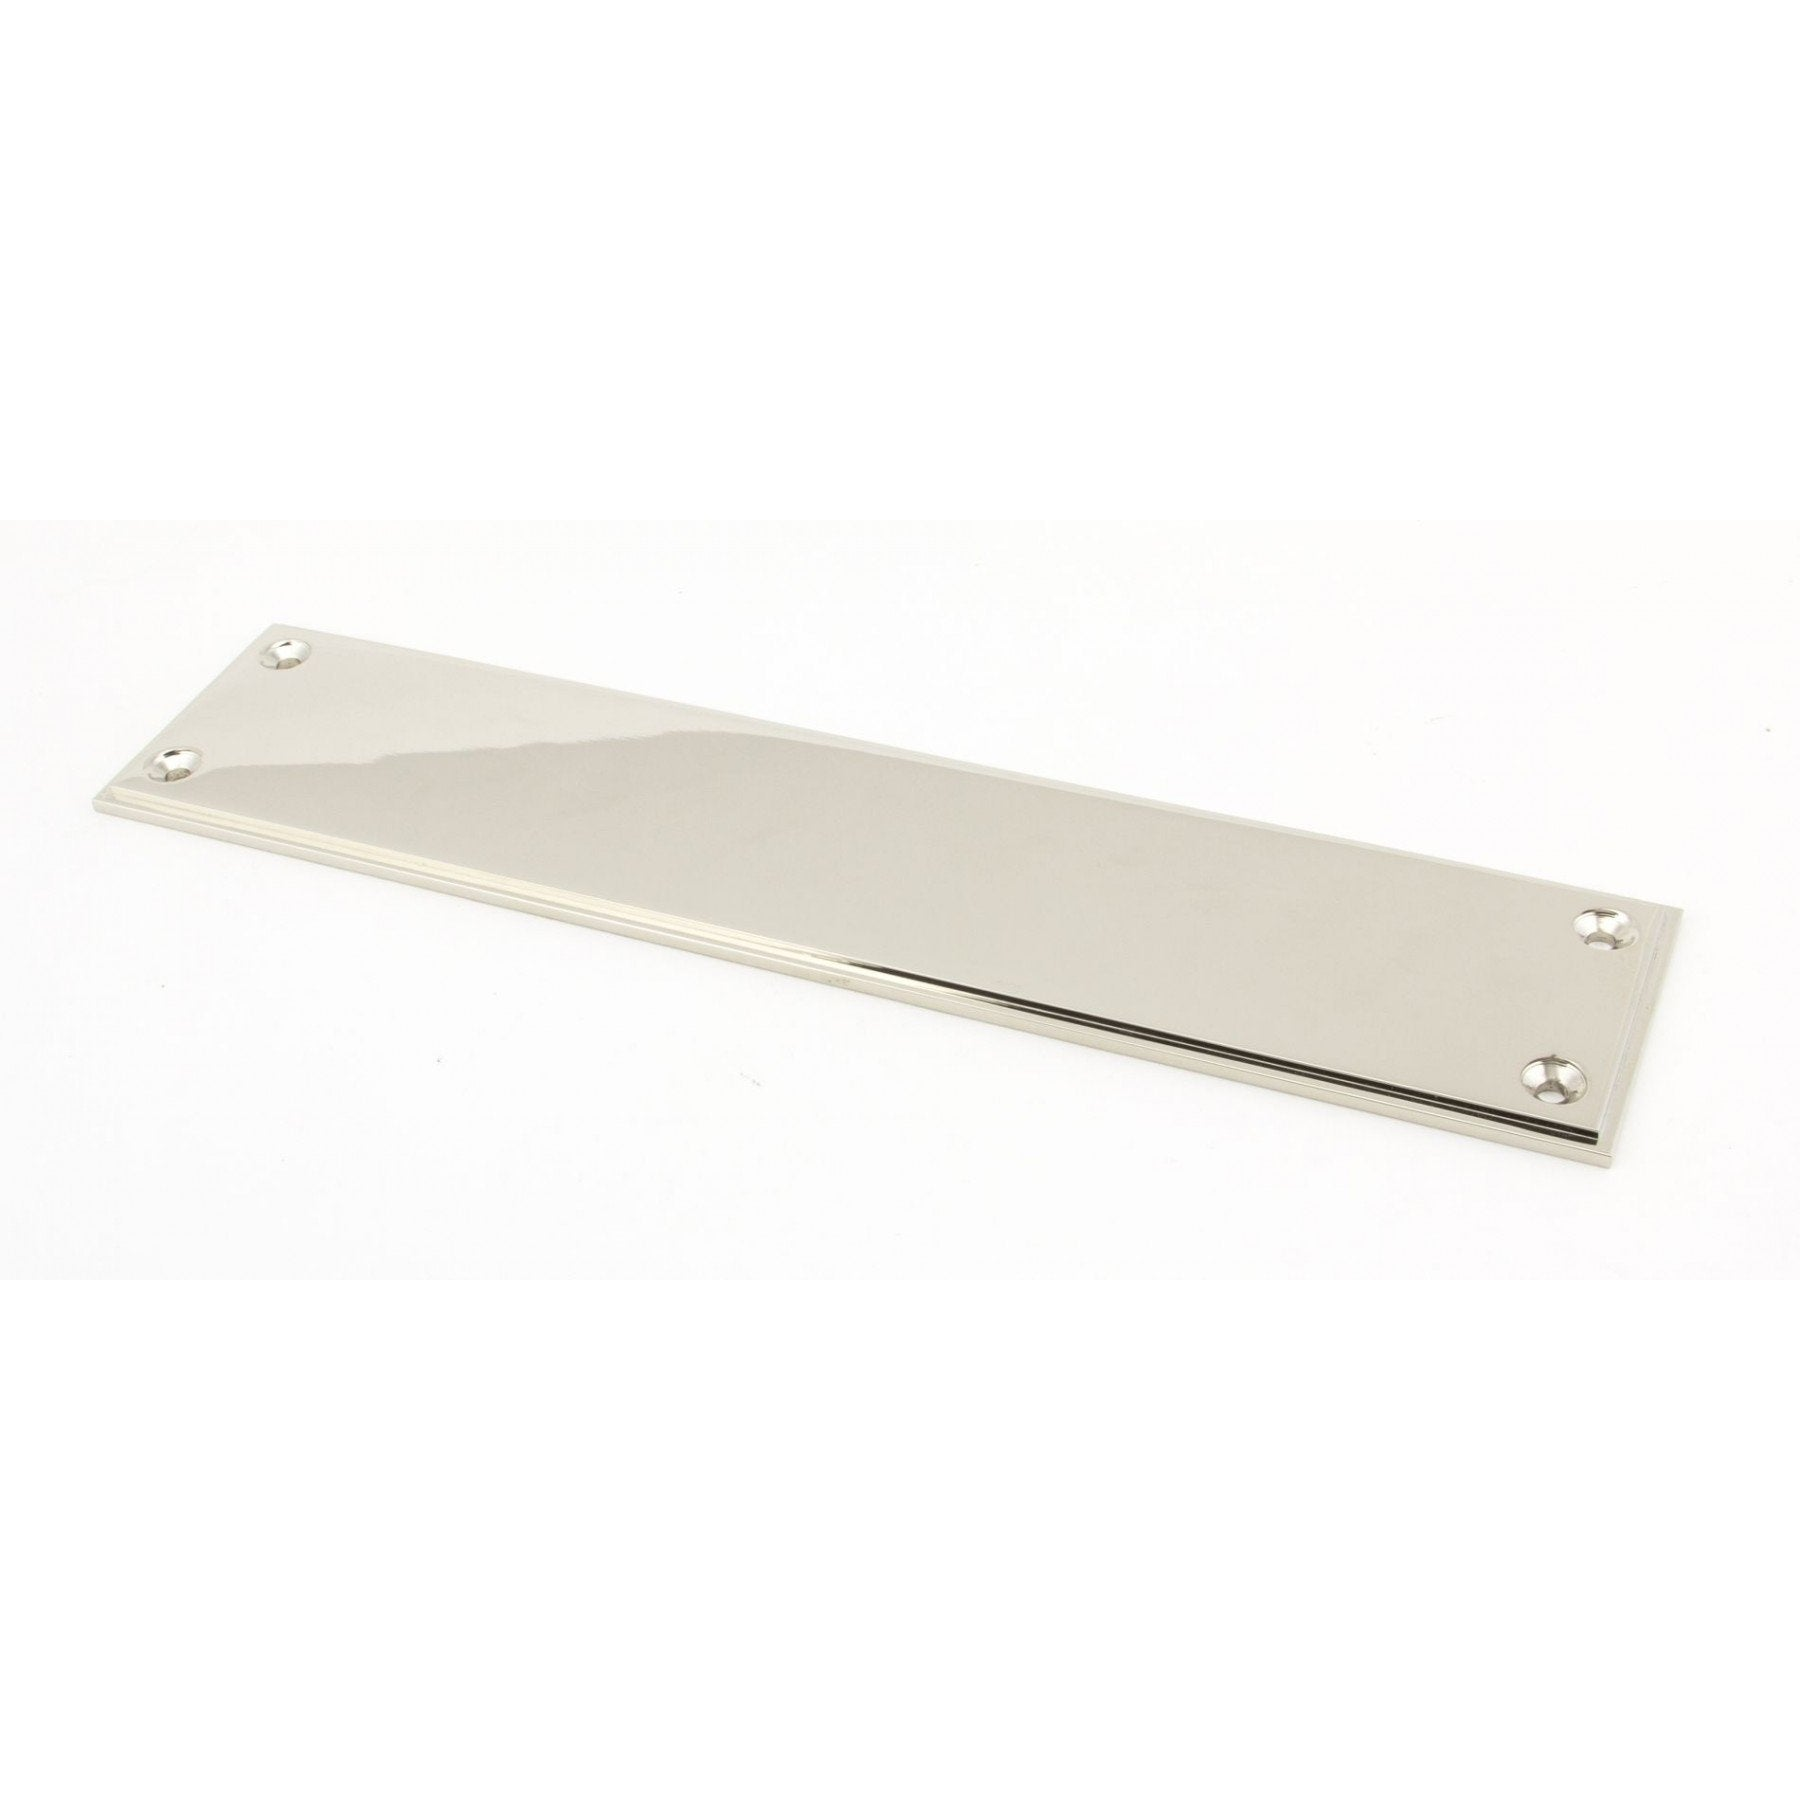 Polished Nickel 300mm Art Deco Fingerplate - No.42 Interiors